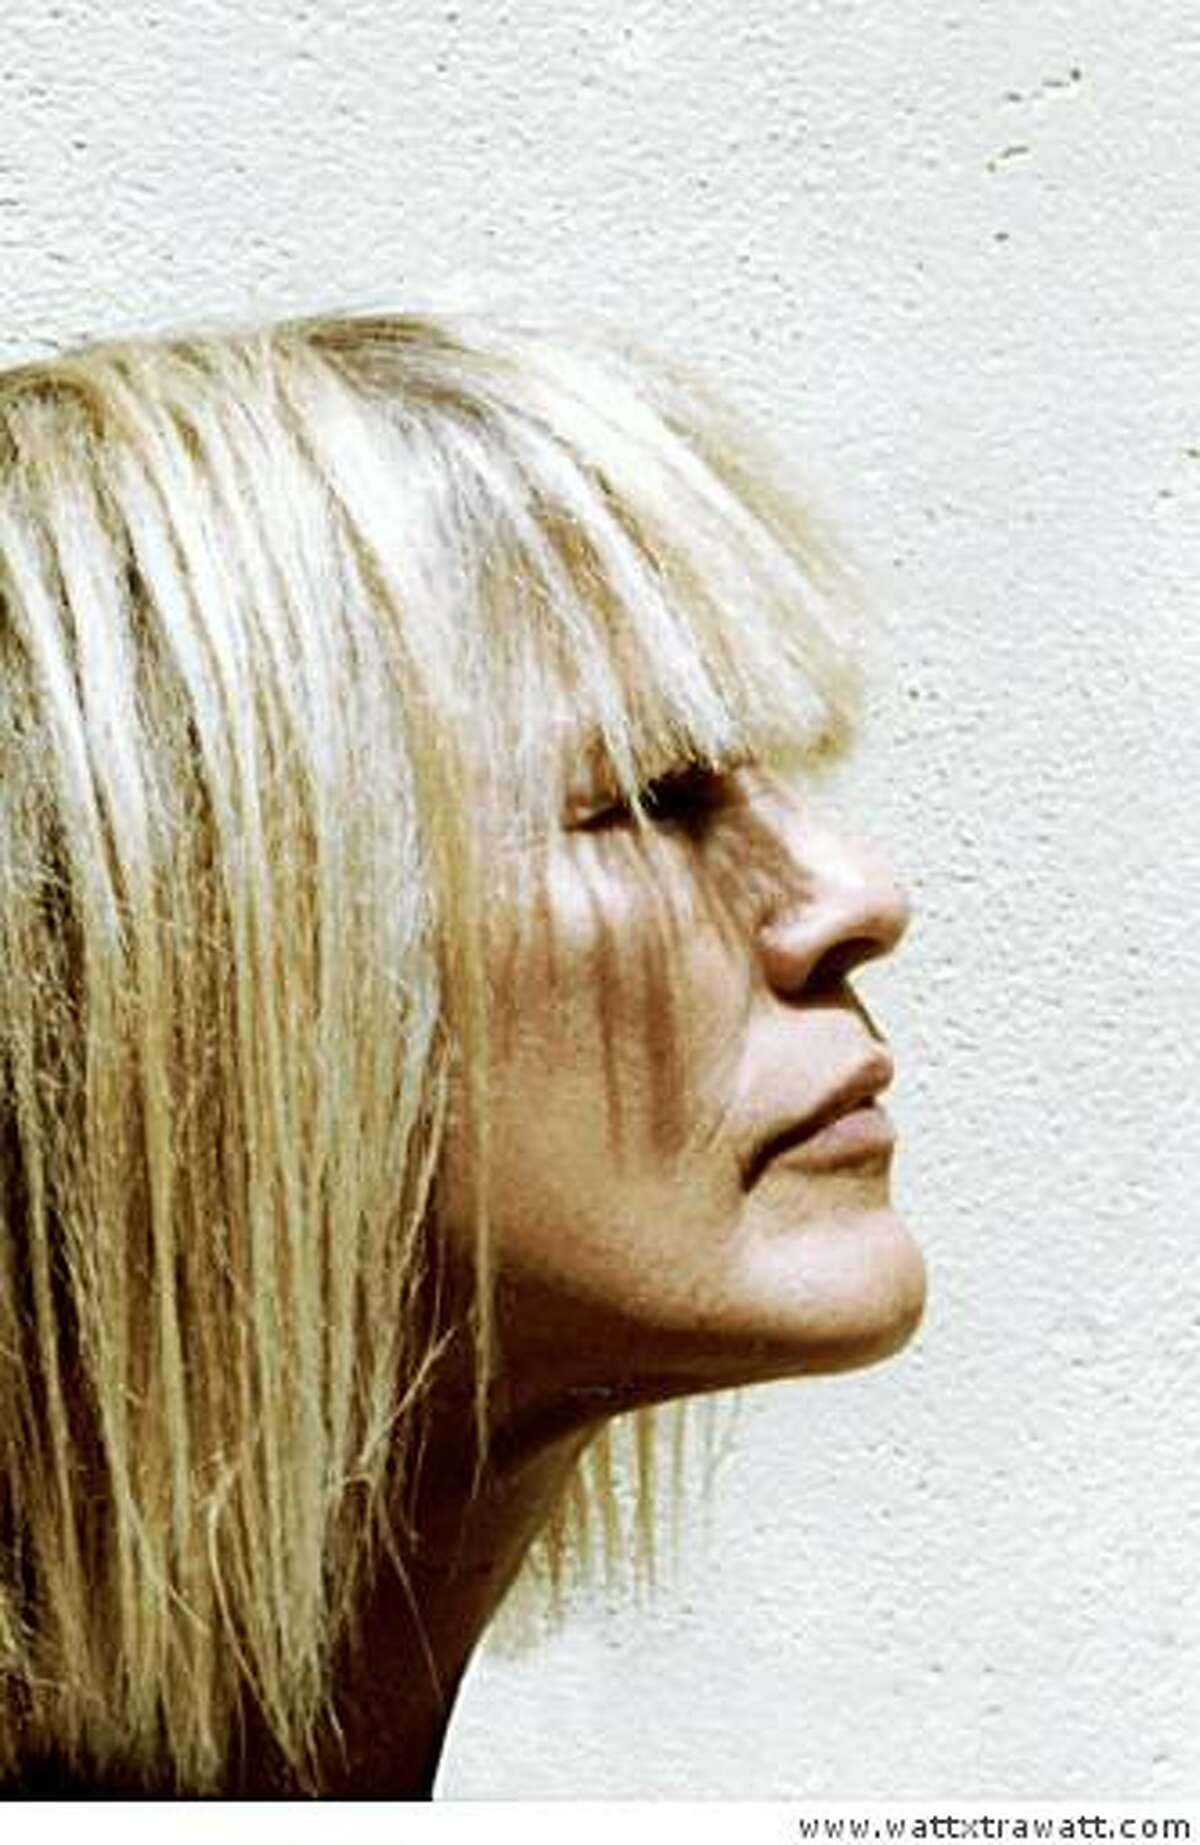 Carla Bley performs with Charlie Haden's Liberation Music Orchestra Sunday, Nov. 2, at the Herbst Theater.